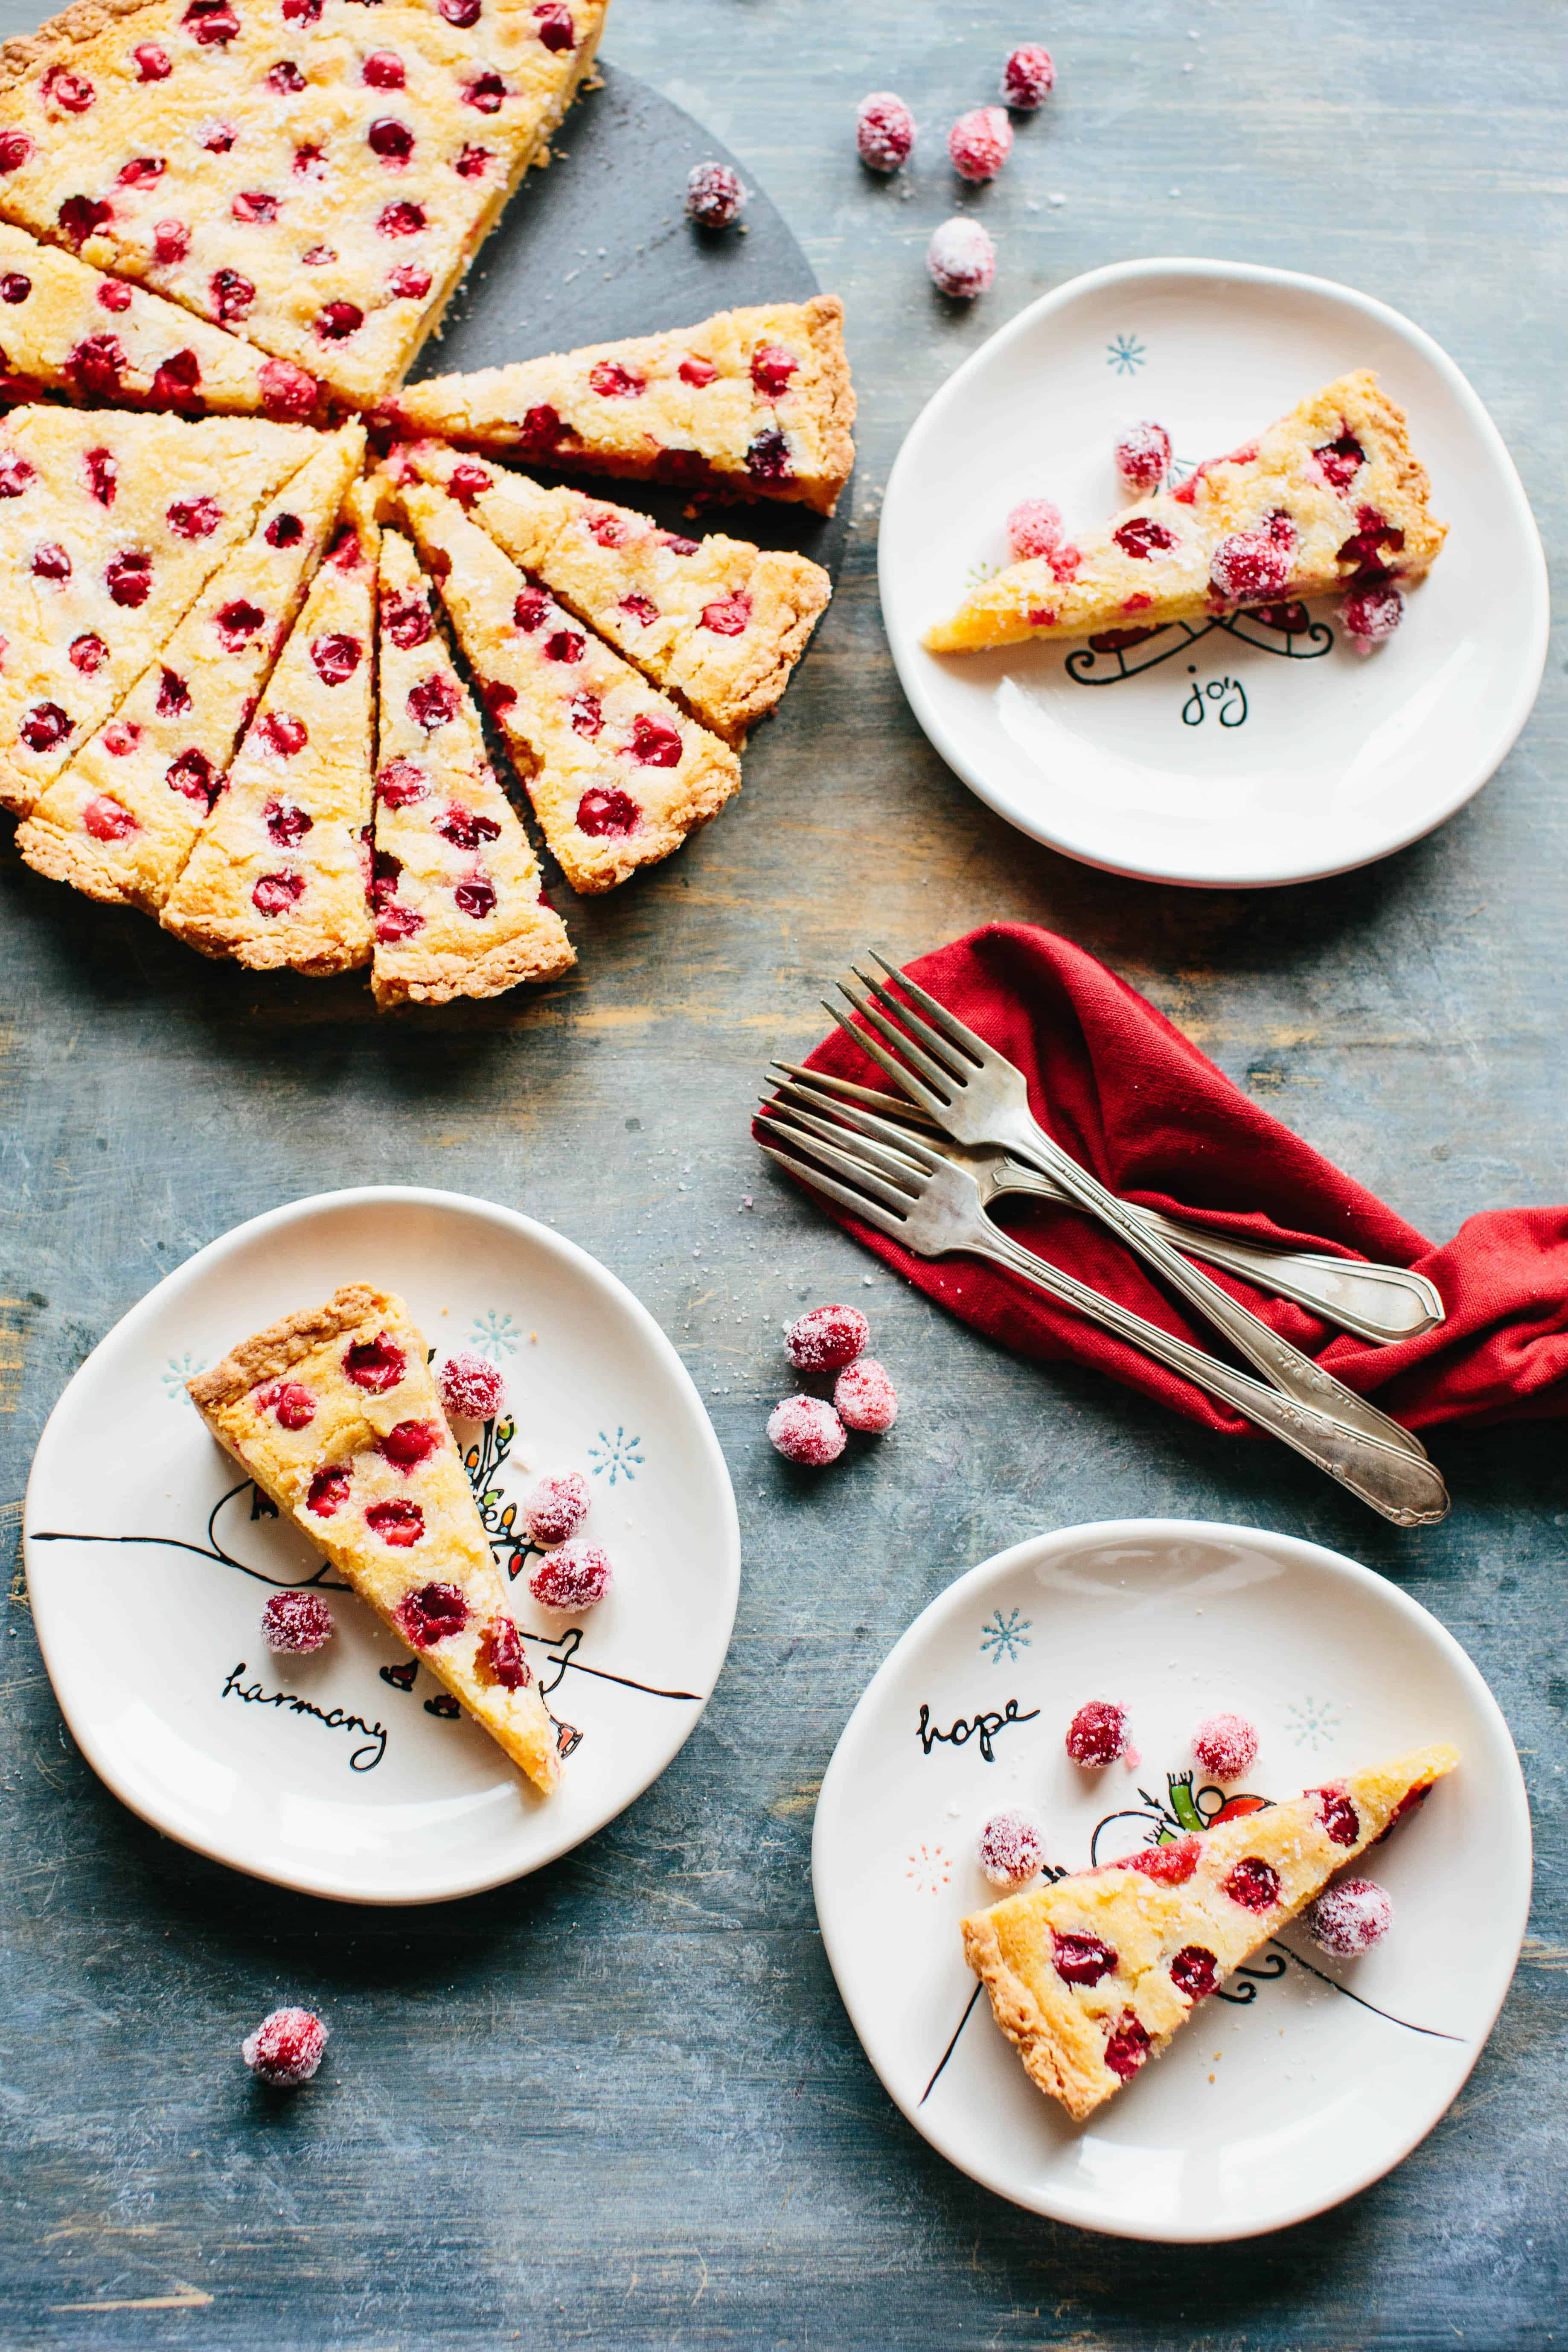 A table of food with several plates of cranberry frangipane tart with a red napkin, forks and sugared cranberries